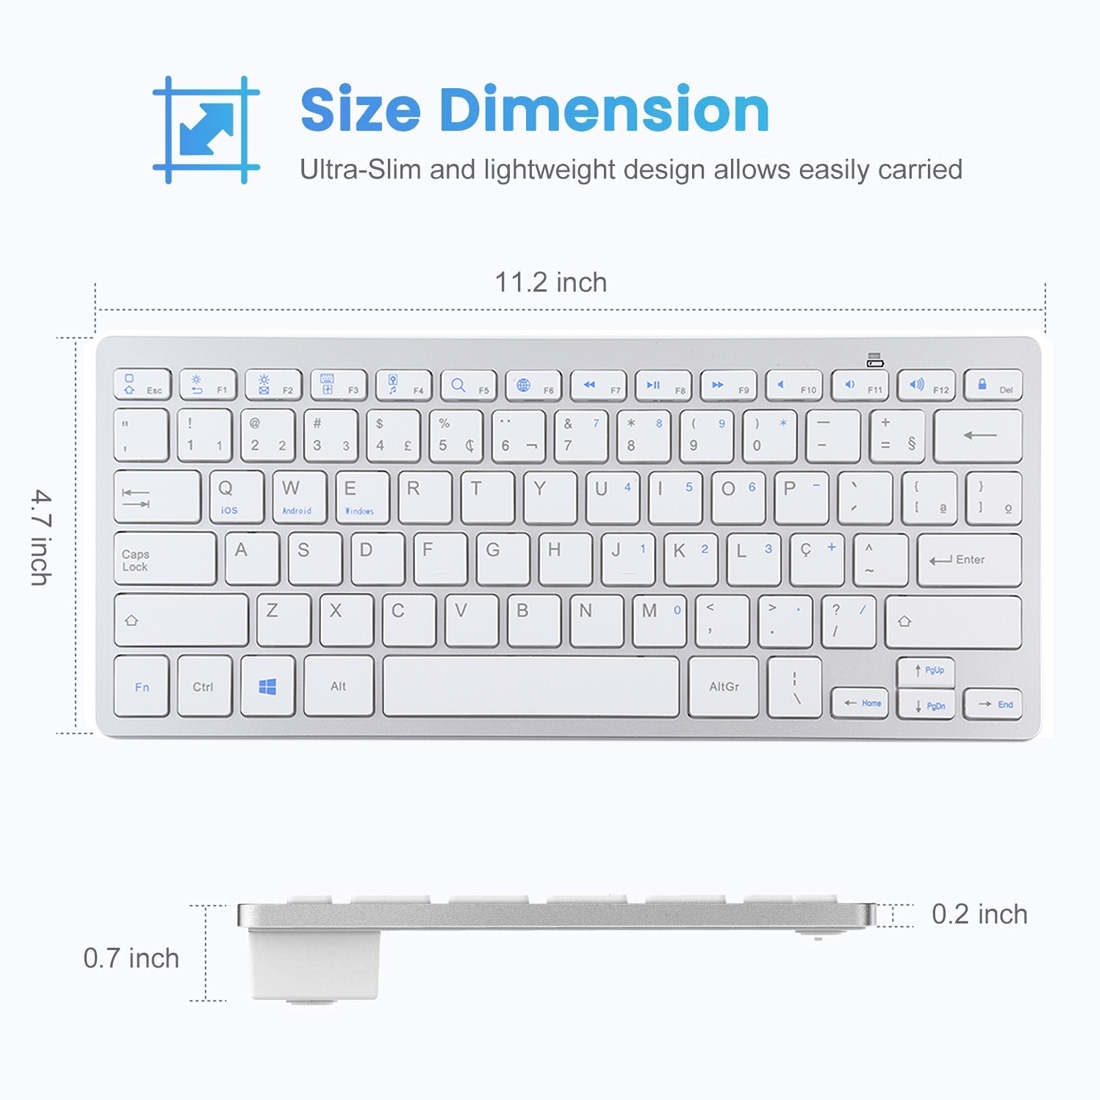 Wireless Keyboard For iPad, Samsung, Tablets, Smart Phones & Computers: Portuguese Keys (Silver)